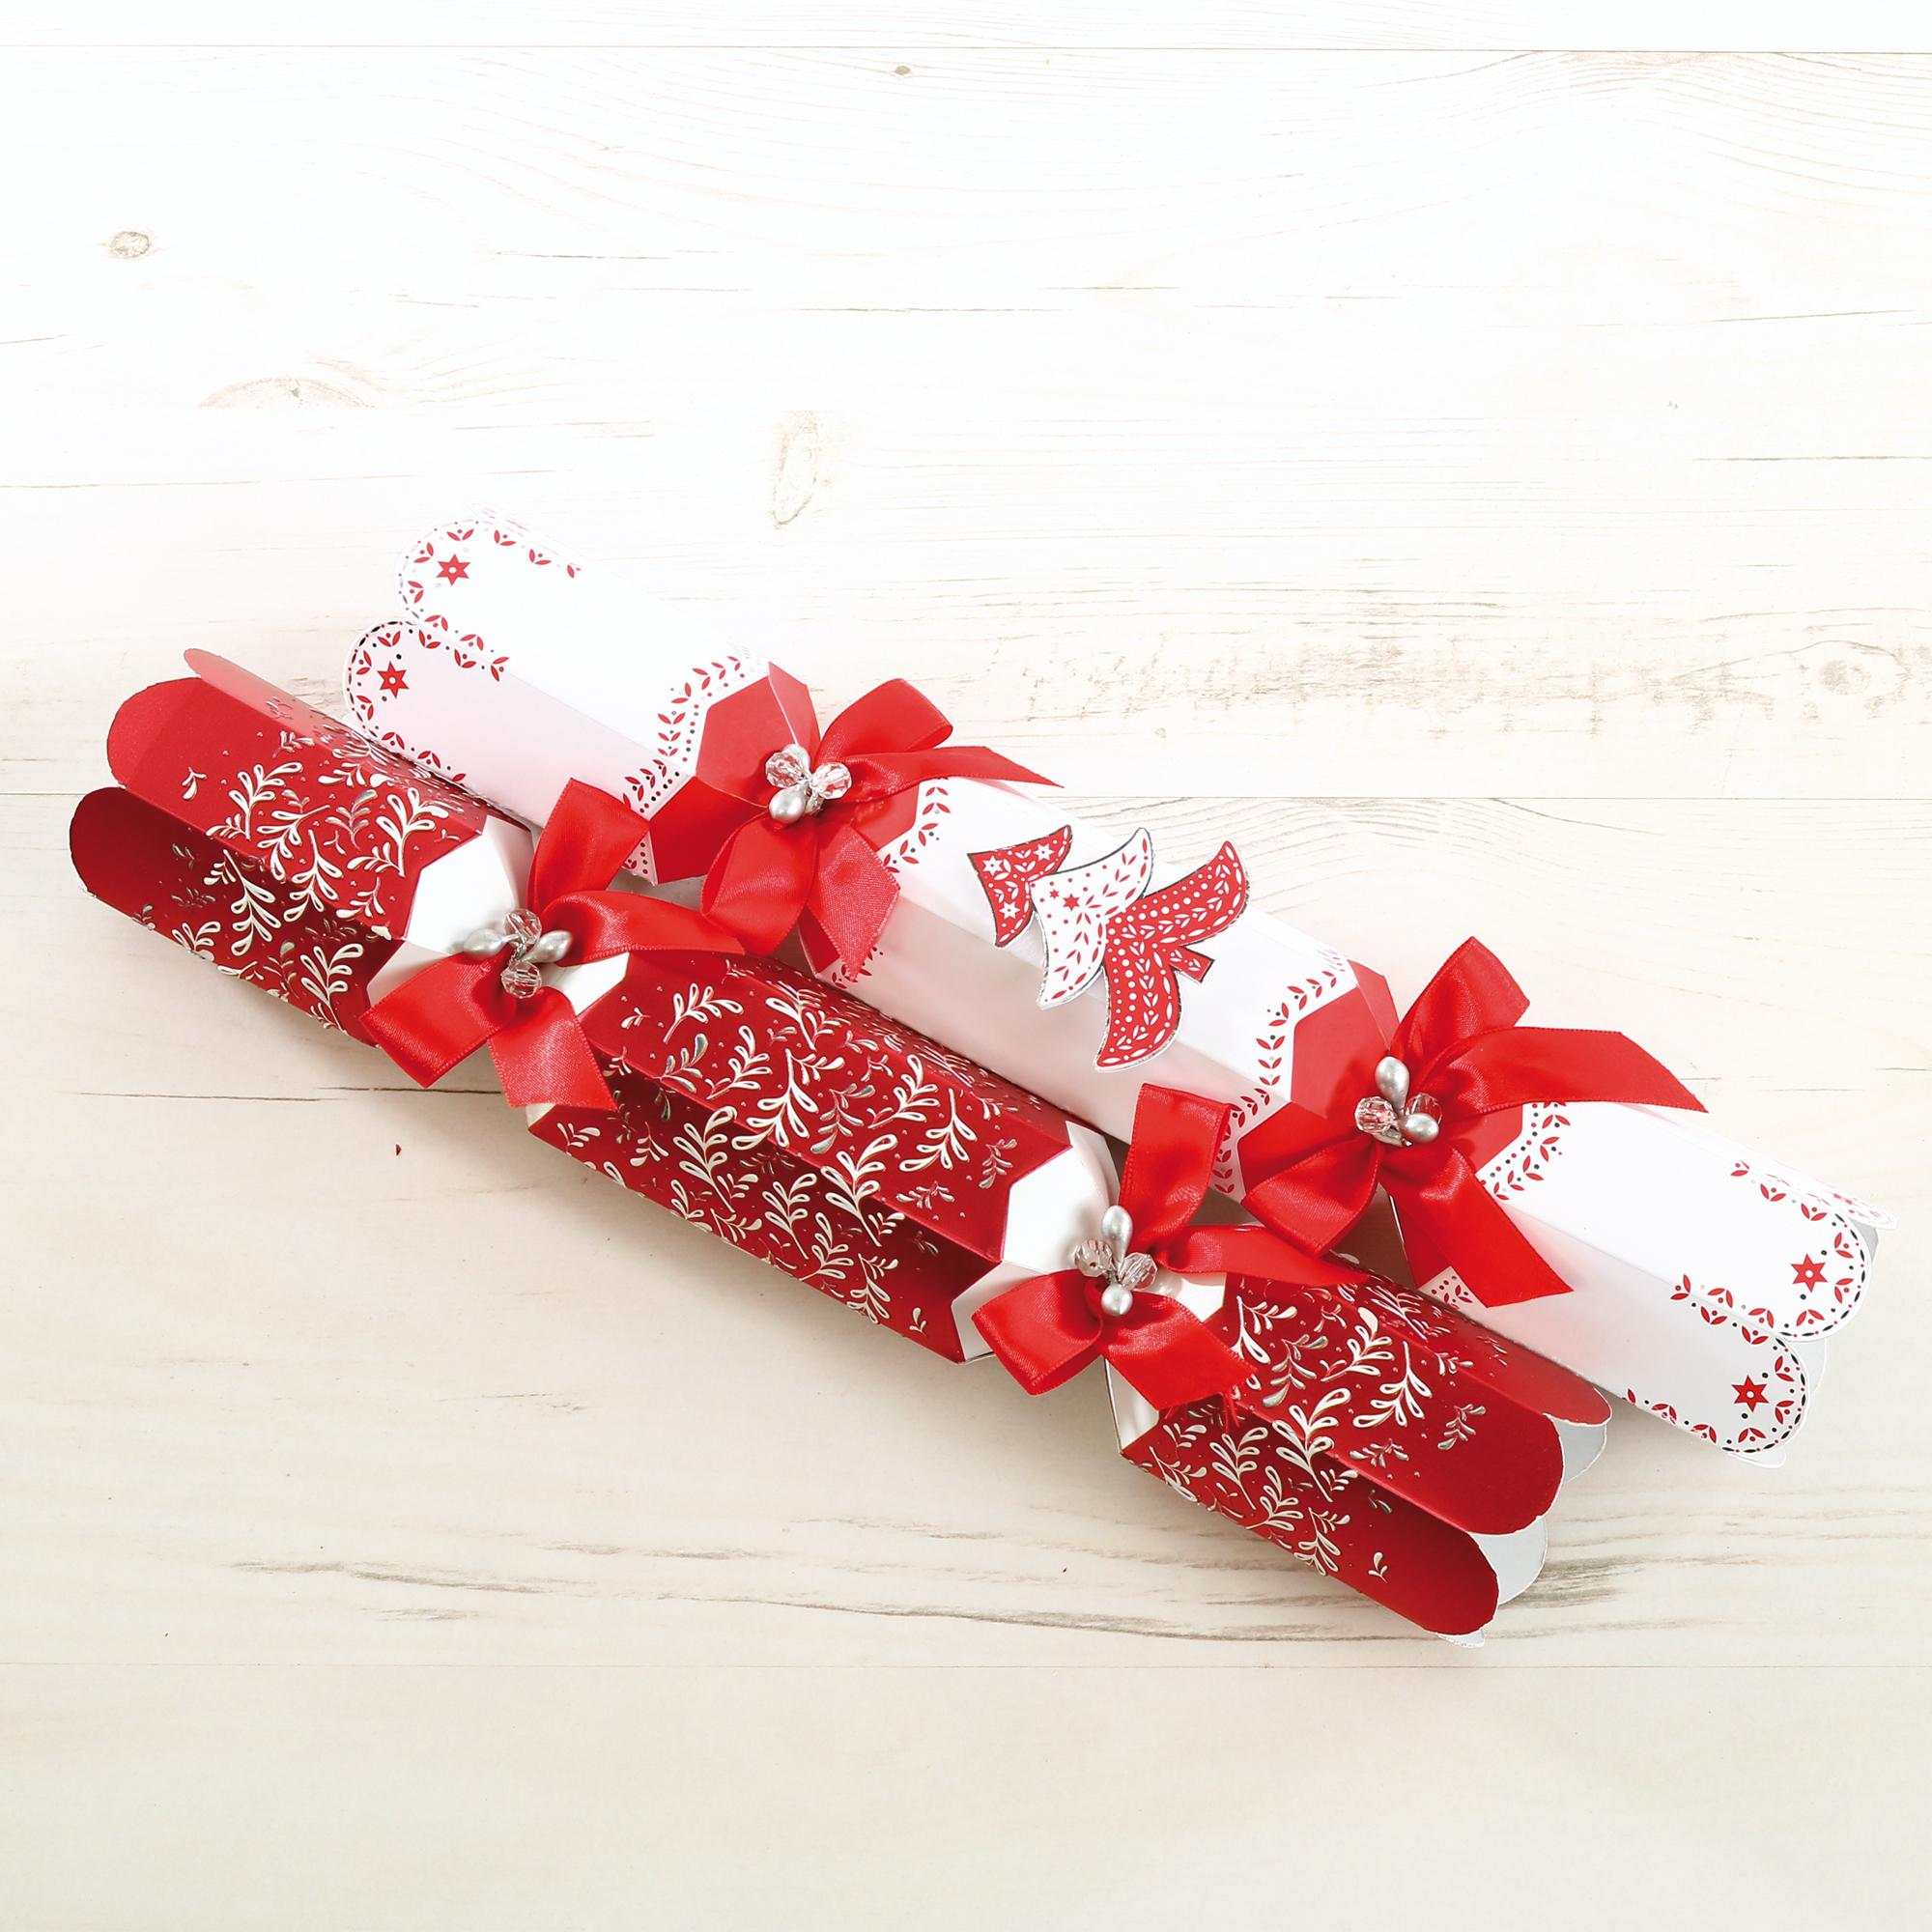 tom smith 6 red white luxury christmas crackers